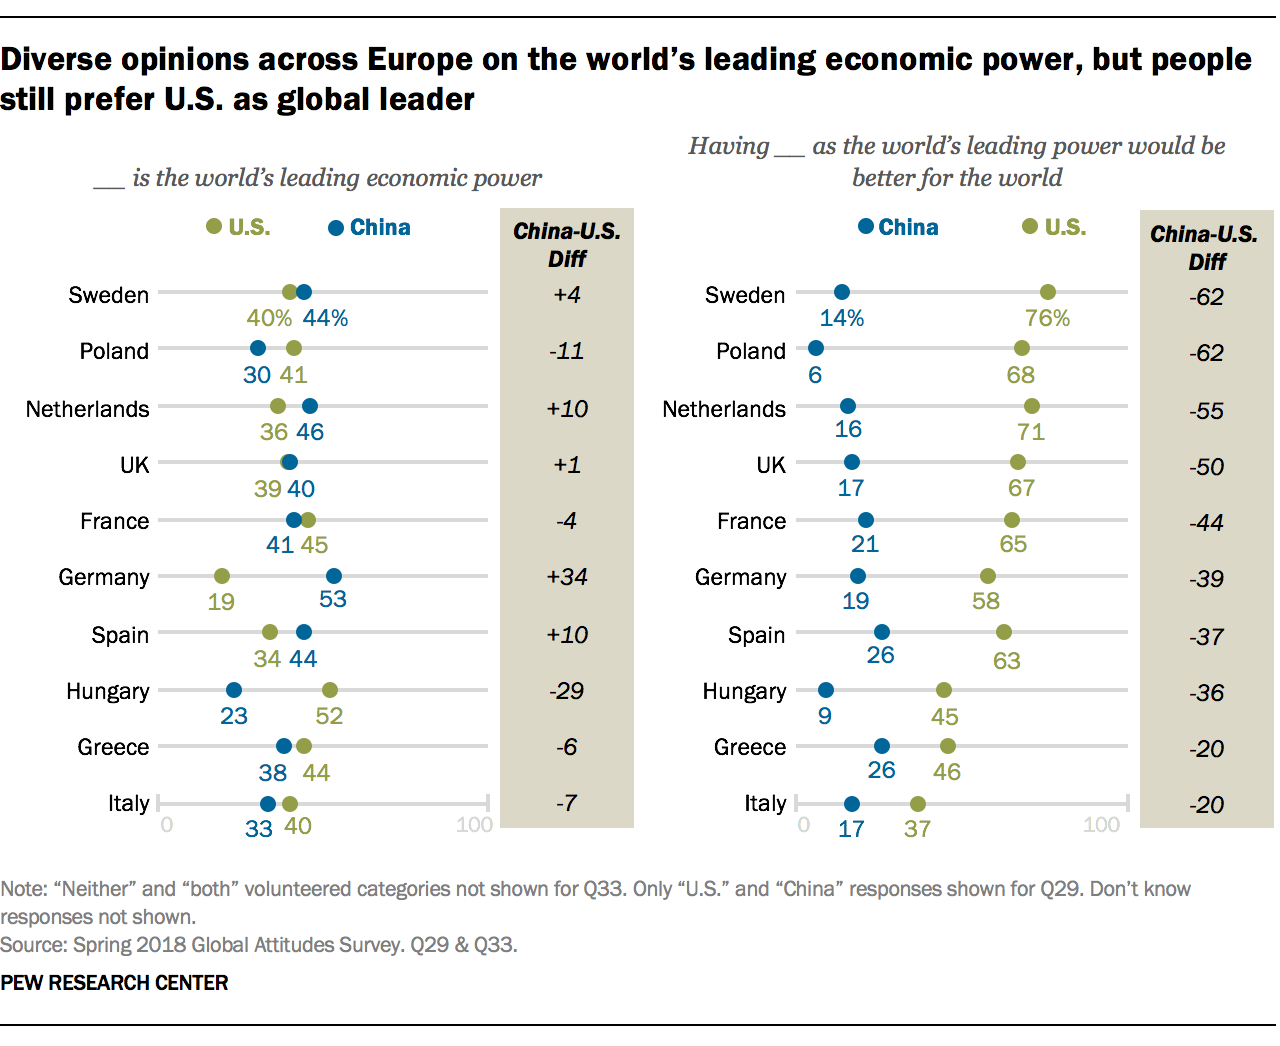 Diverse opinions across Europe on the world's leading economic power, but people still prefer U.S. as global leader